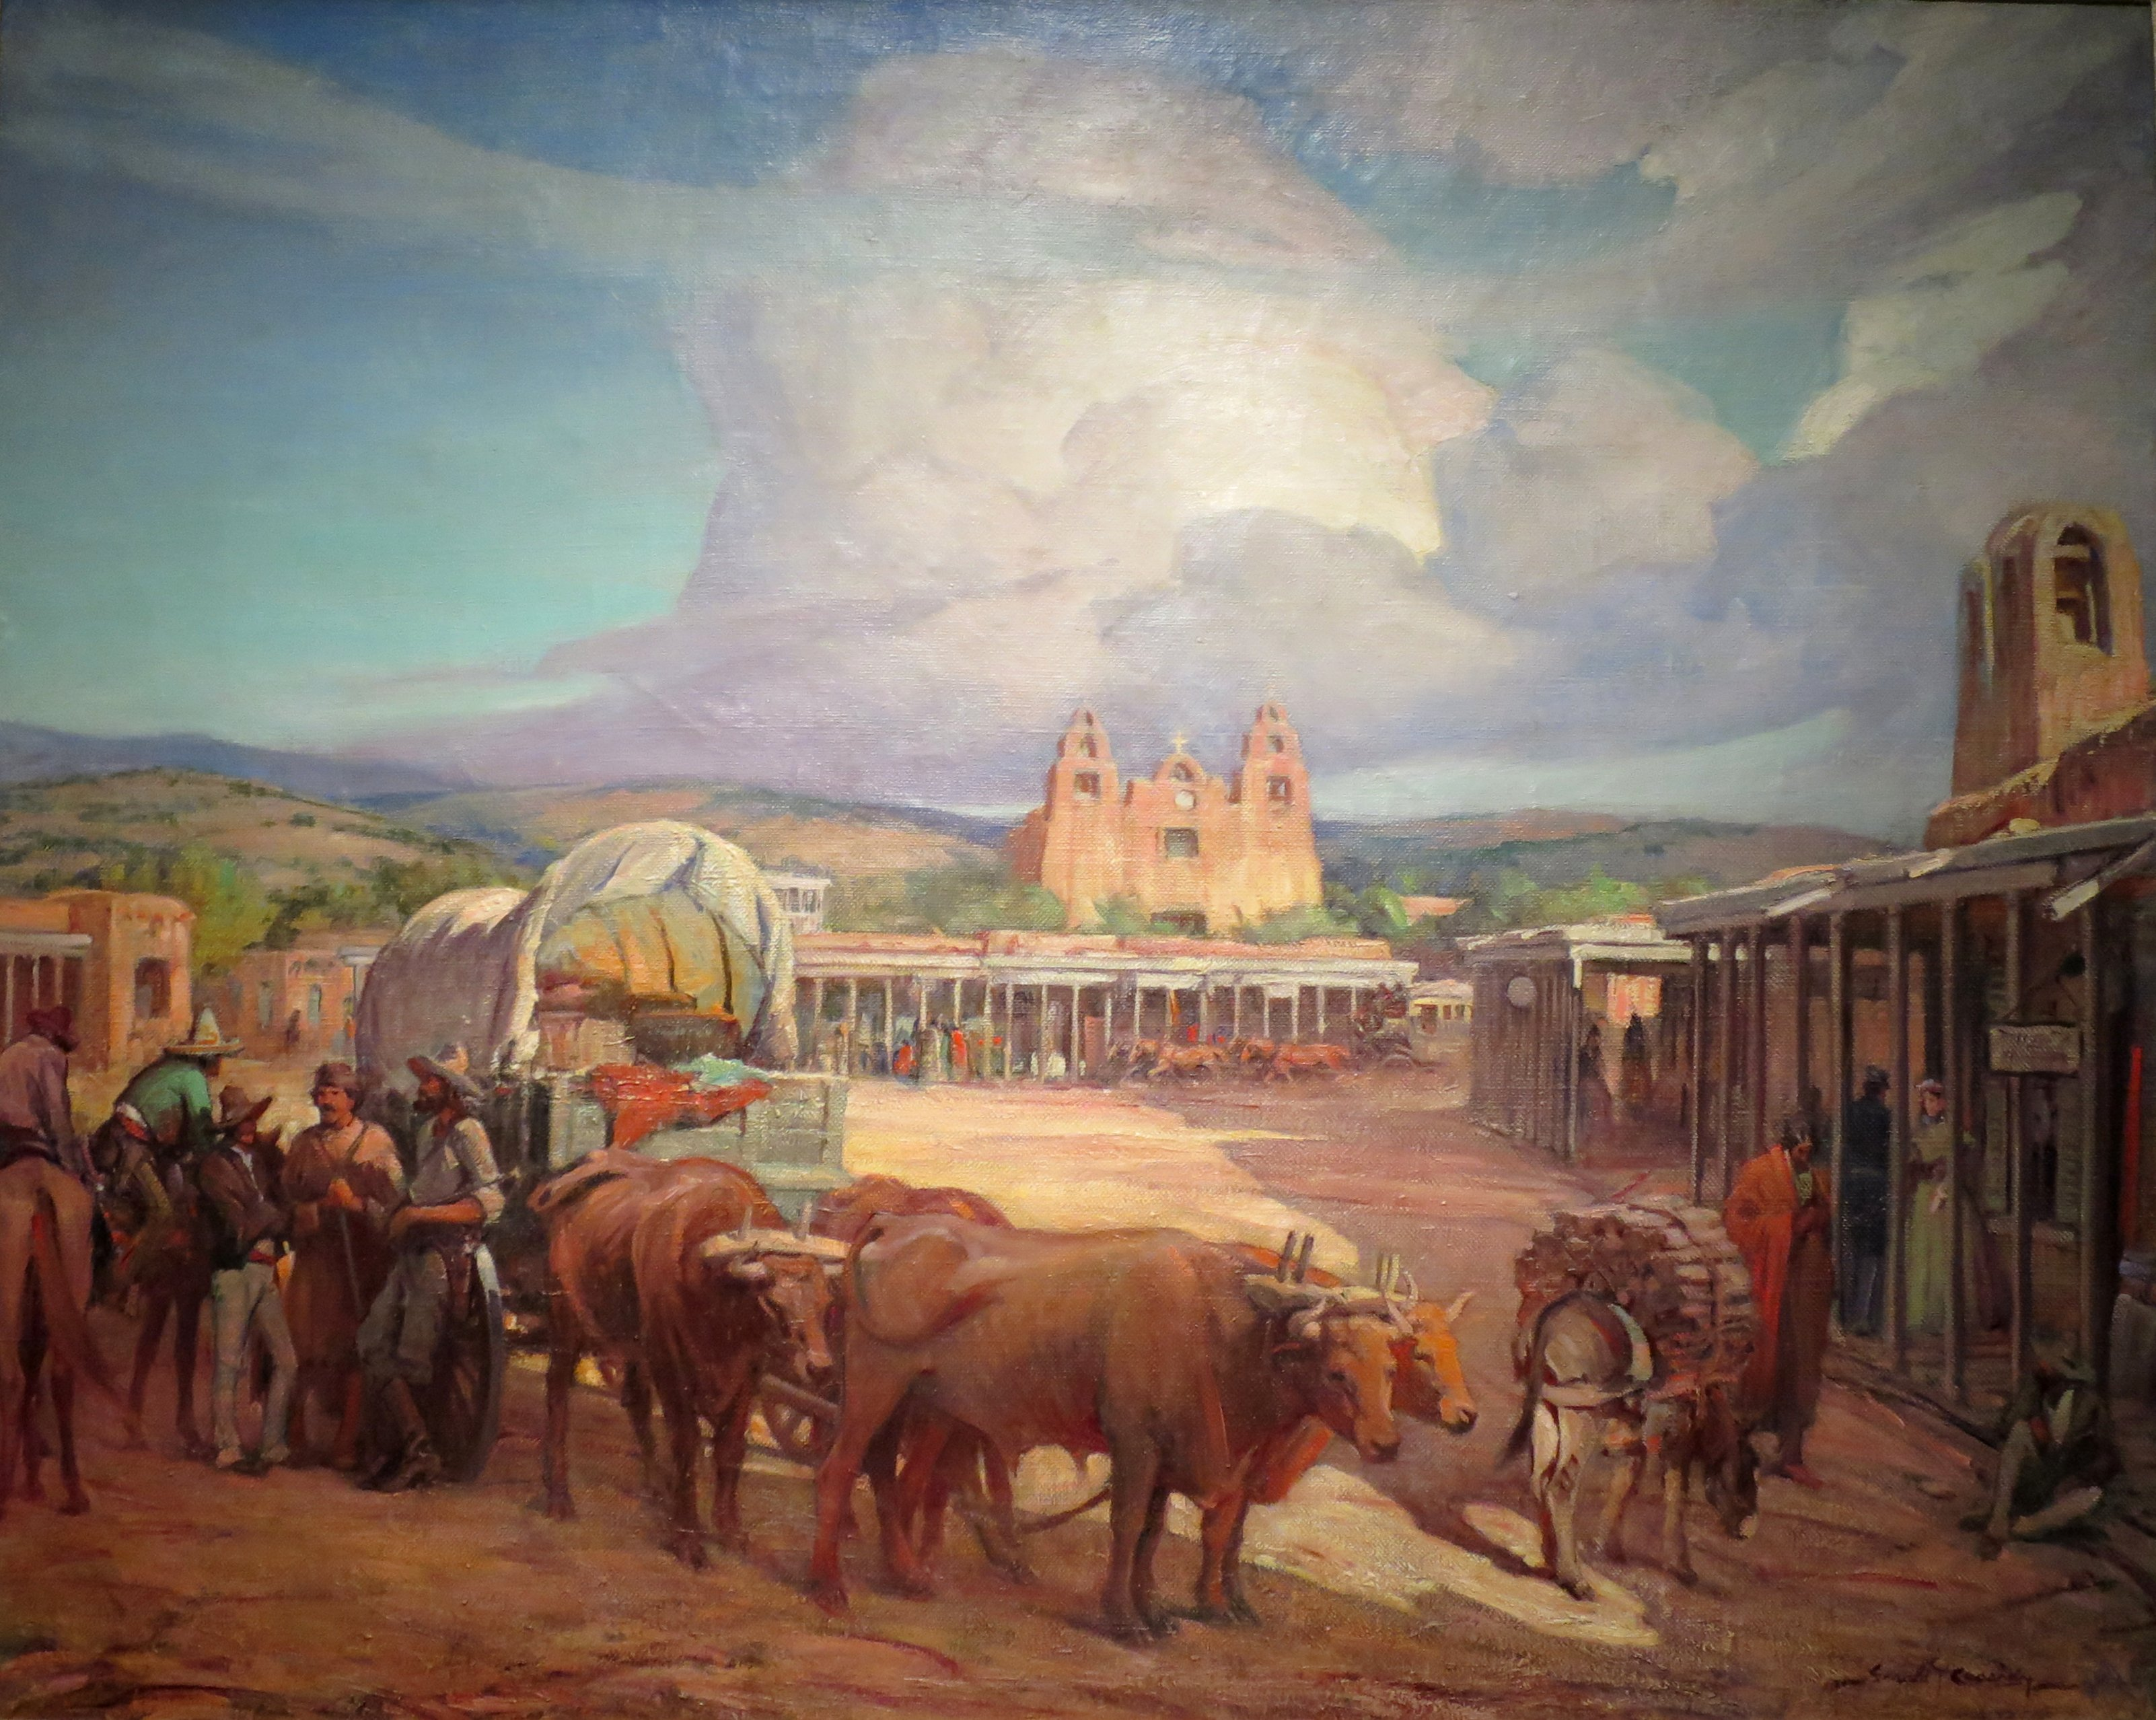 Canvas Santa Fe >> File:'View of Santa Fe Plaza in the 1850s' by Gerald Cassidy, c. 1930.JPG - Wikimedia Commons